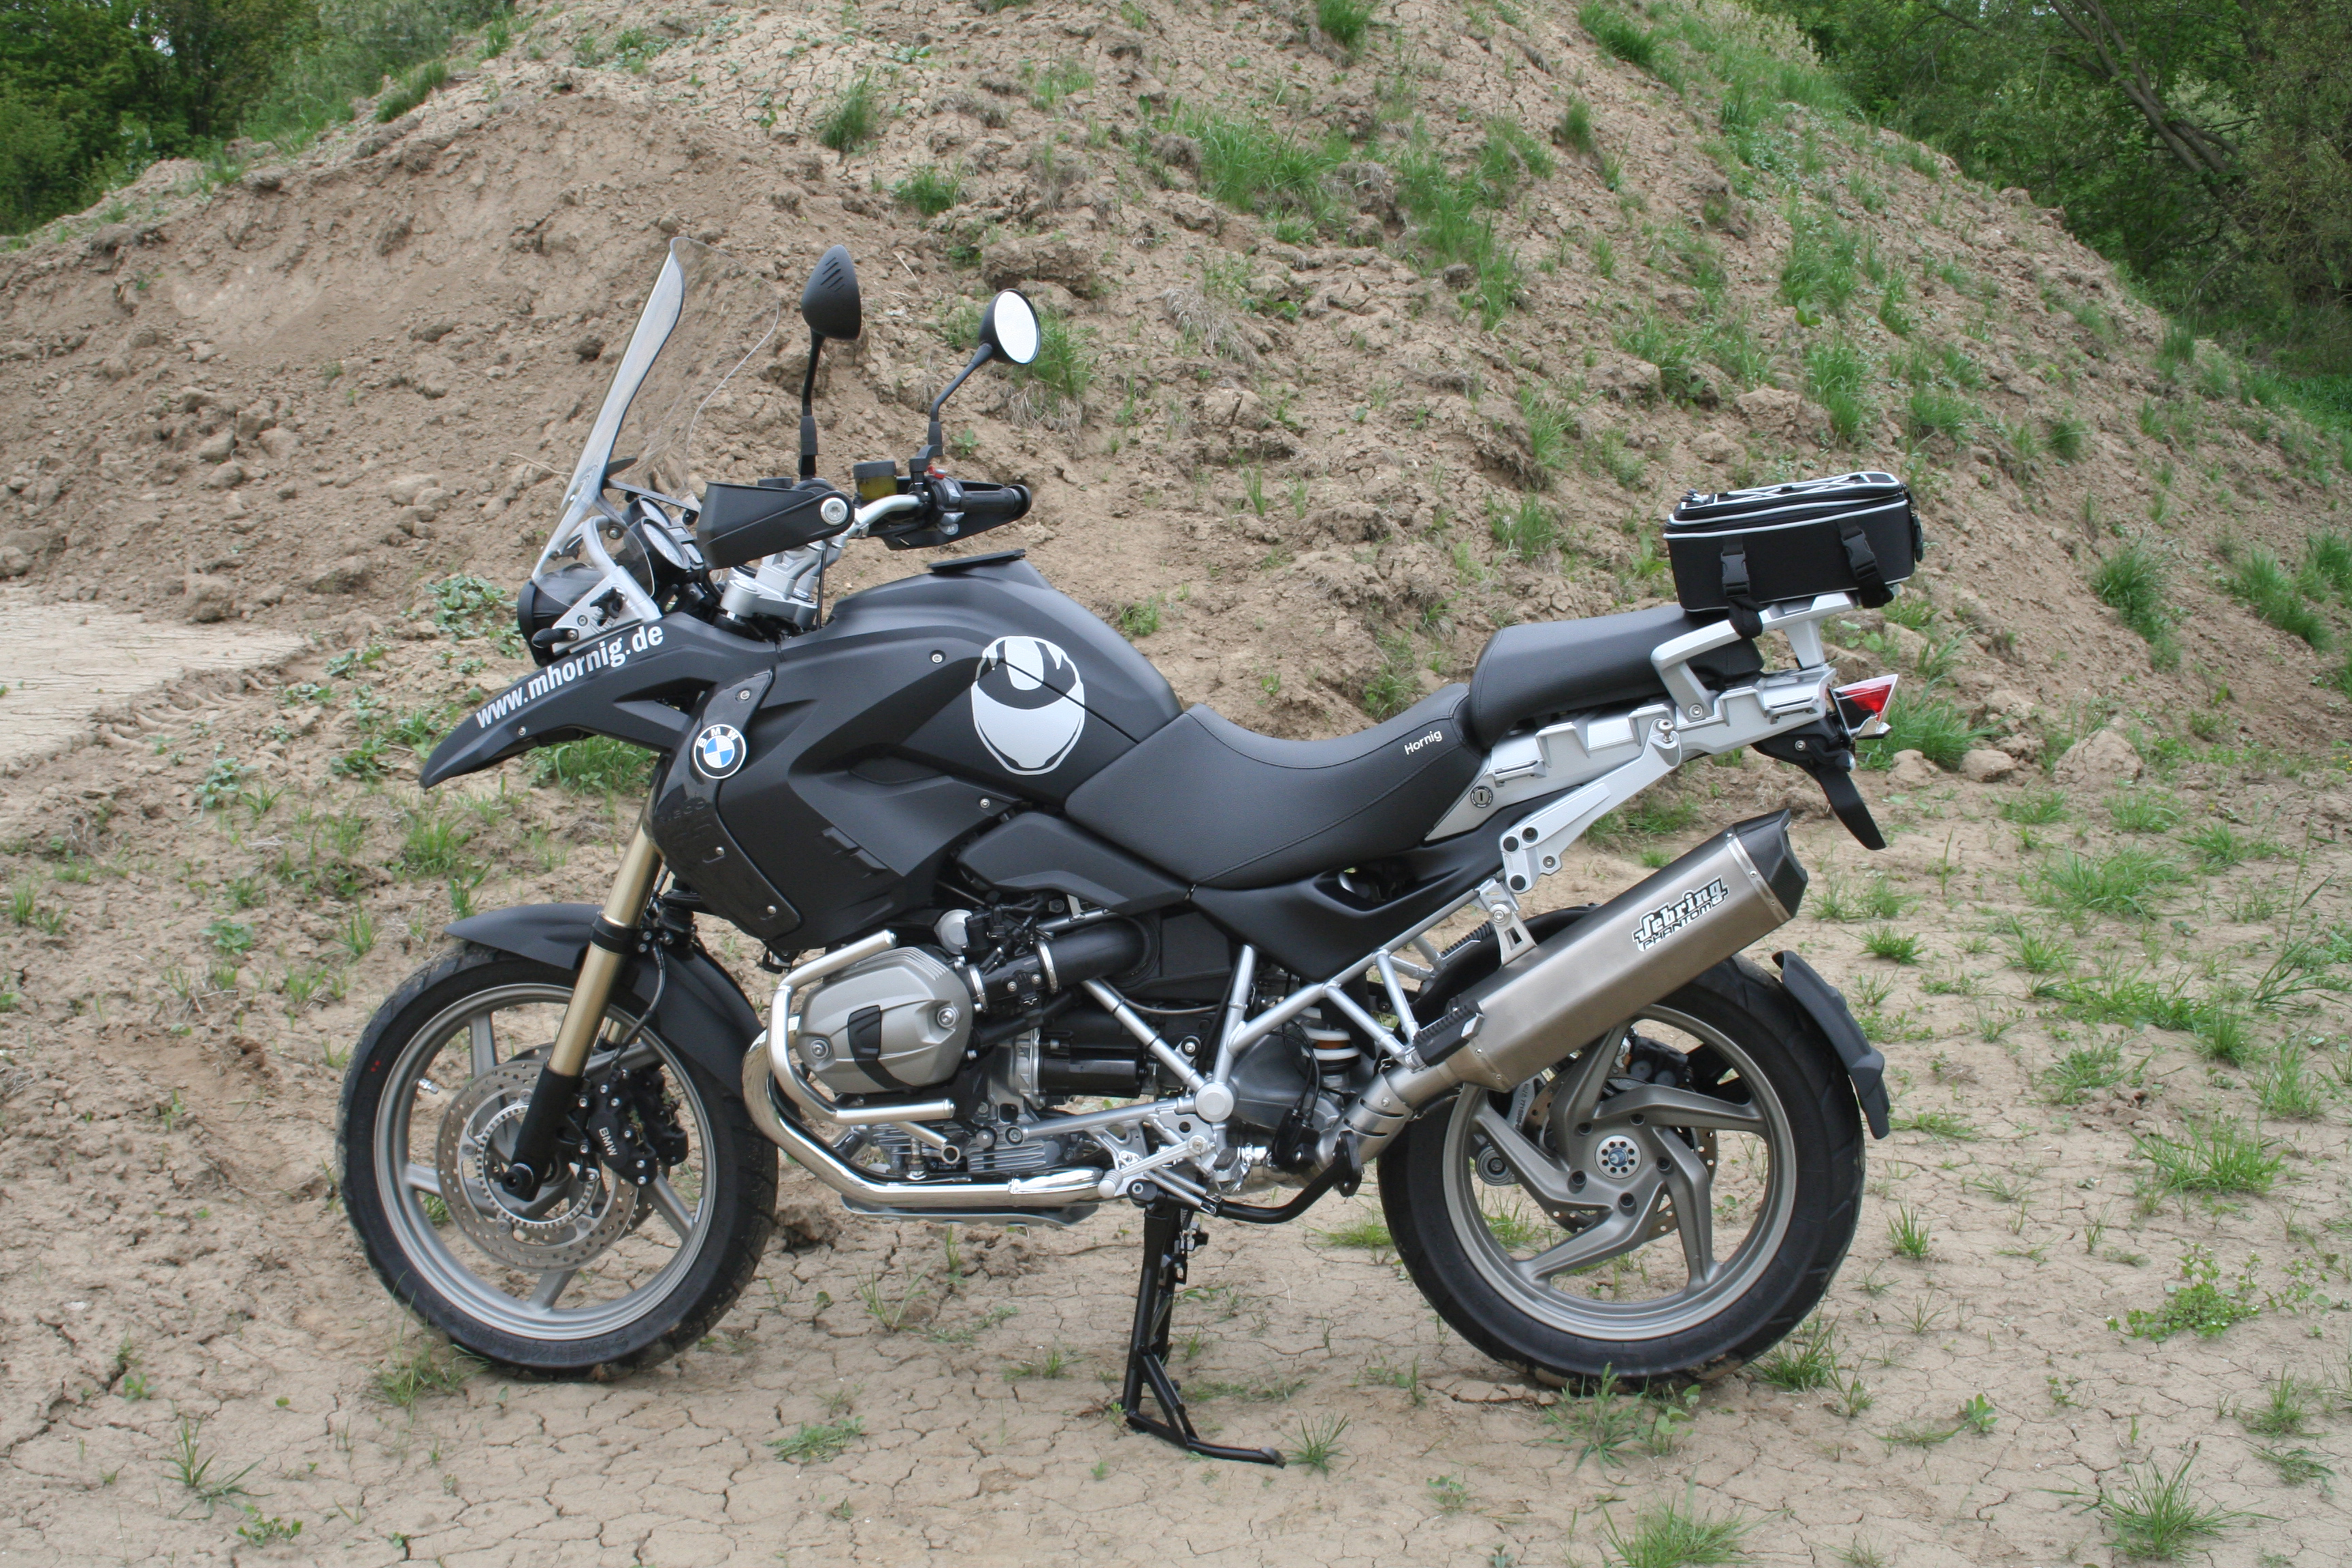 Hornig Bmw R1200gs Conversion The Customised Tourer Motorcycle